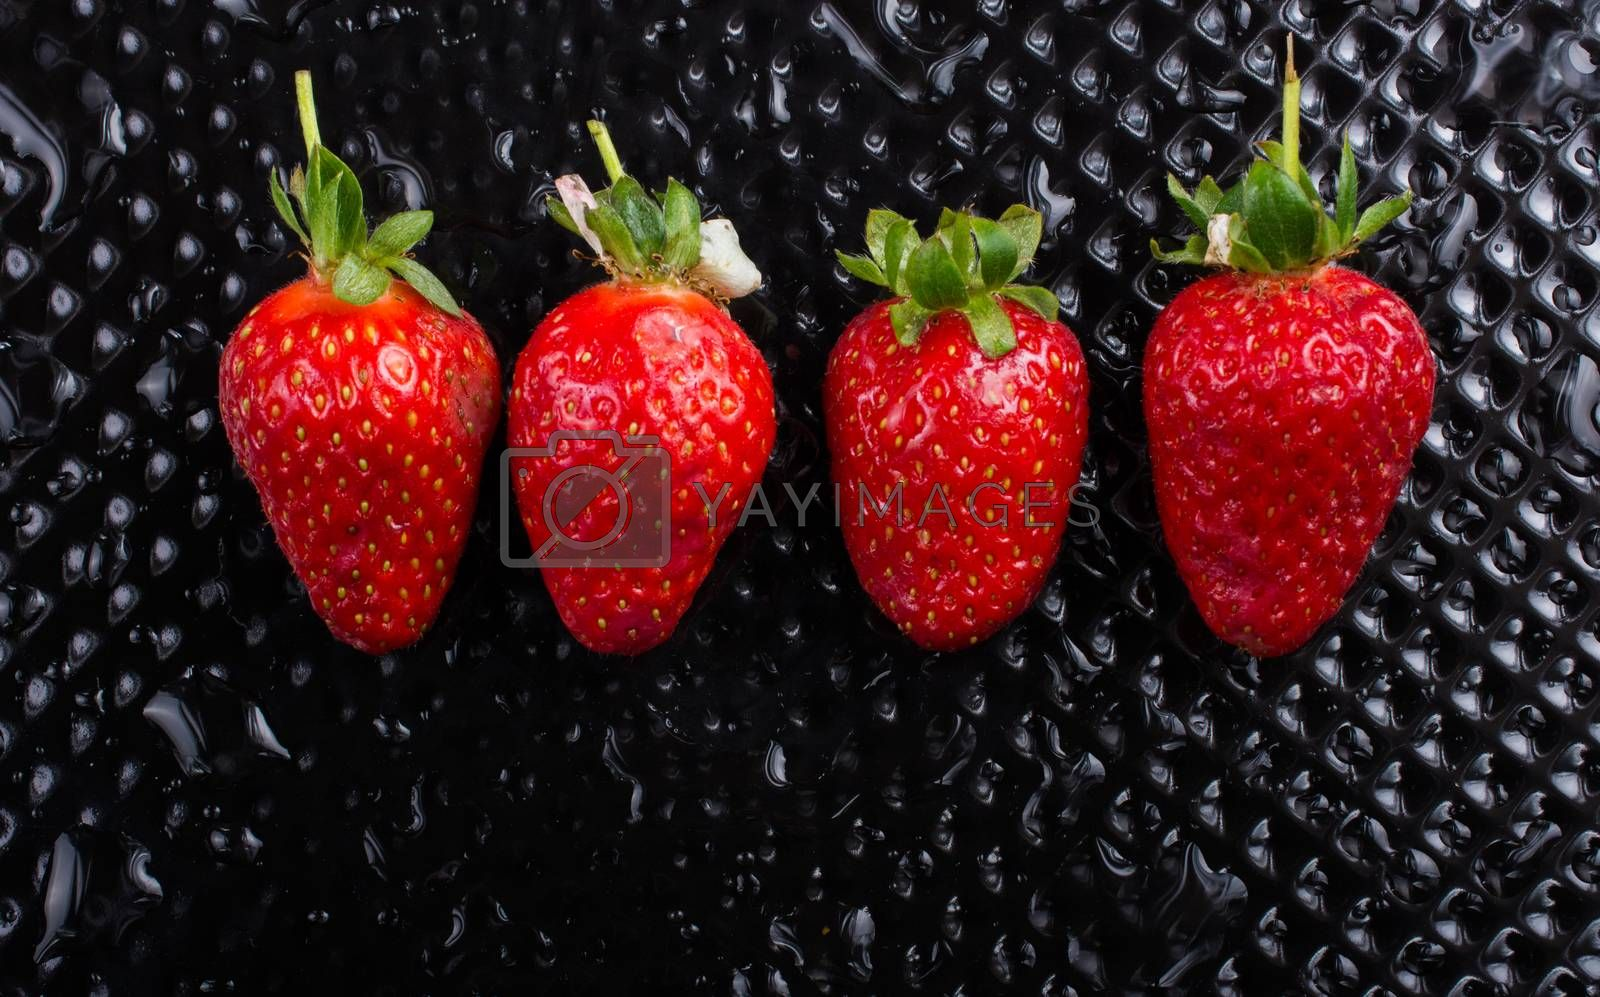 A view of a juicy, sweet and ripe strawberry fruit